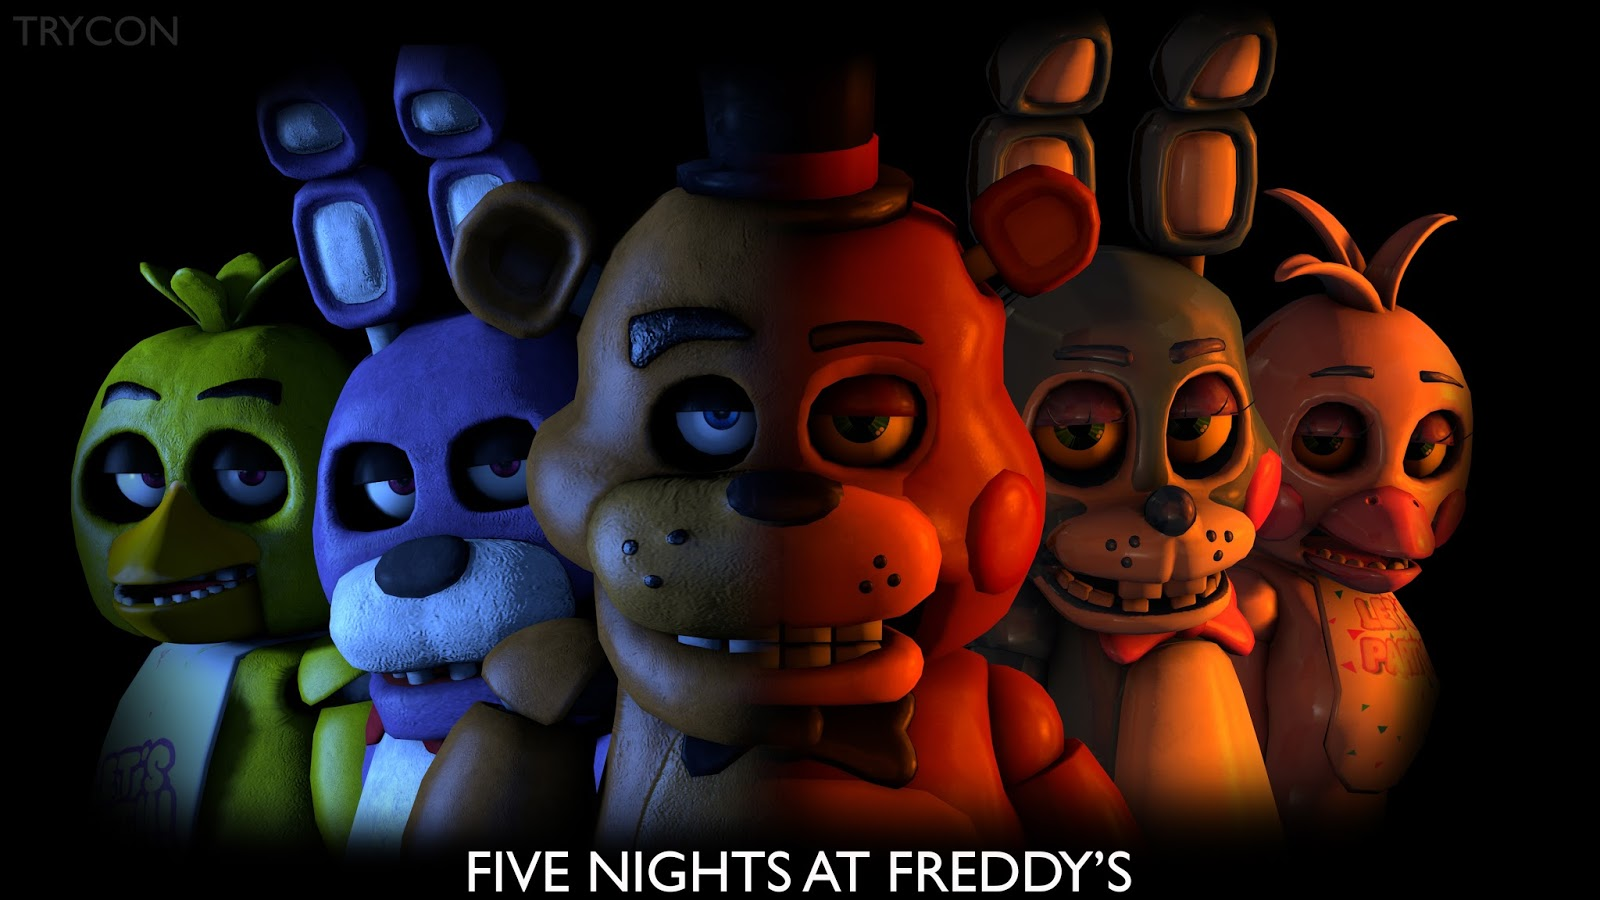 Game De Terror Quot Five Nights At Freddy S Quot Ganhar 225 Livro